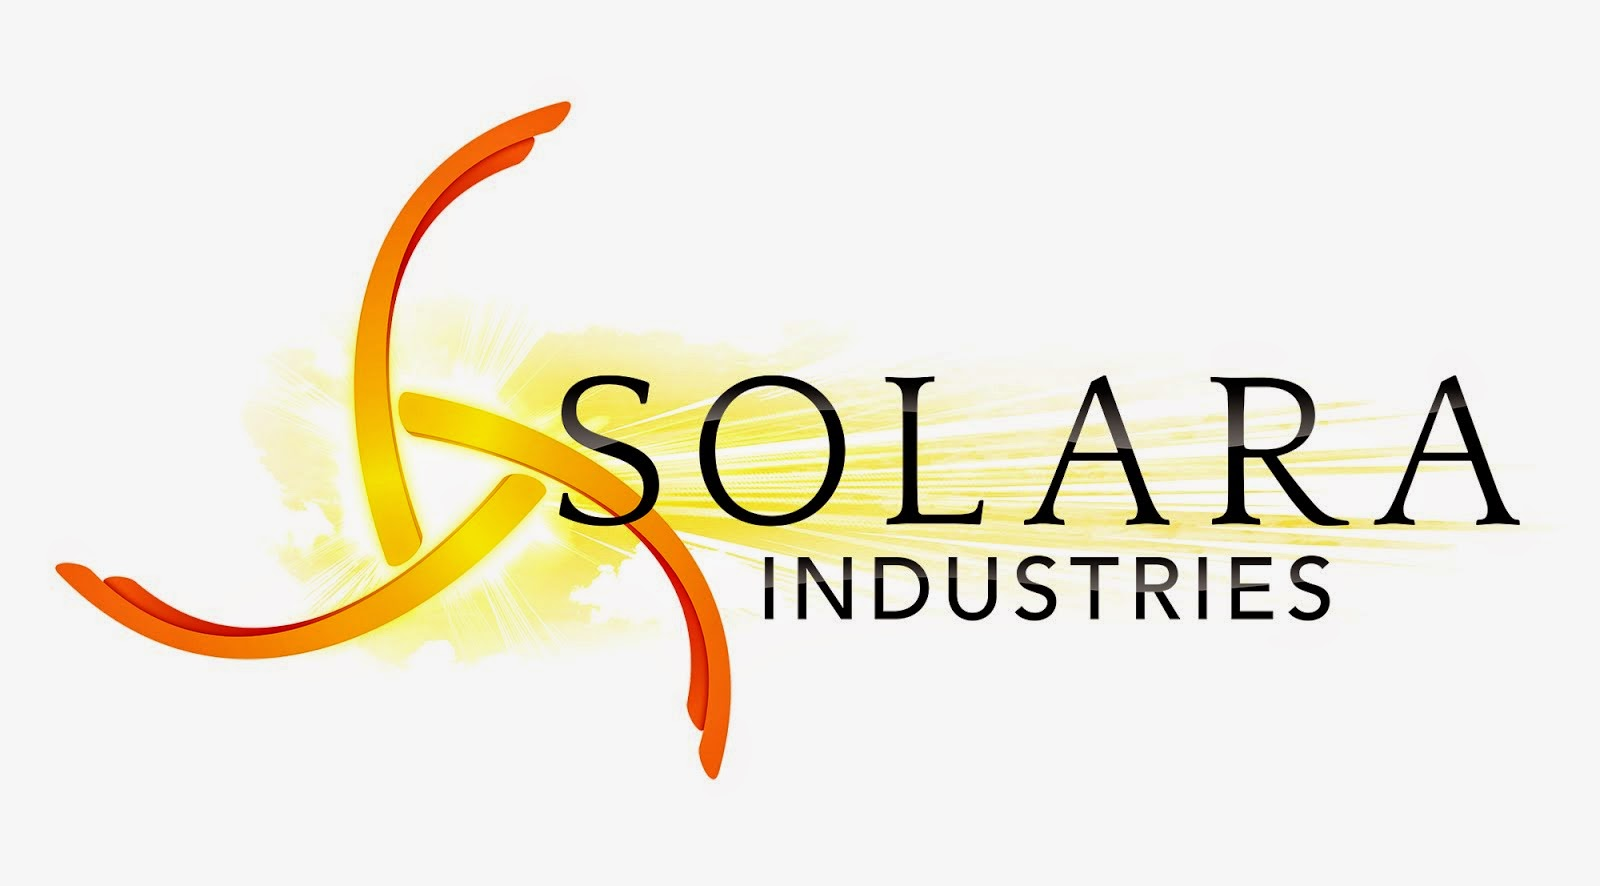 Call Solara Industries 844-319-5808